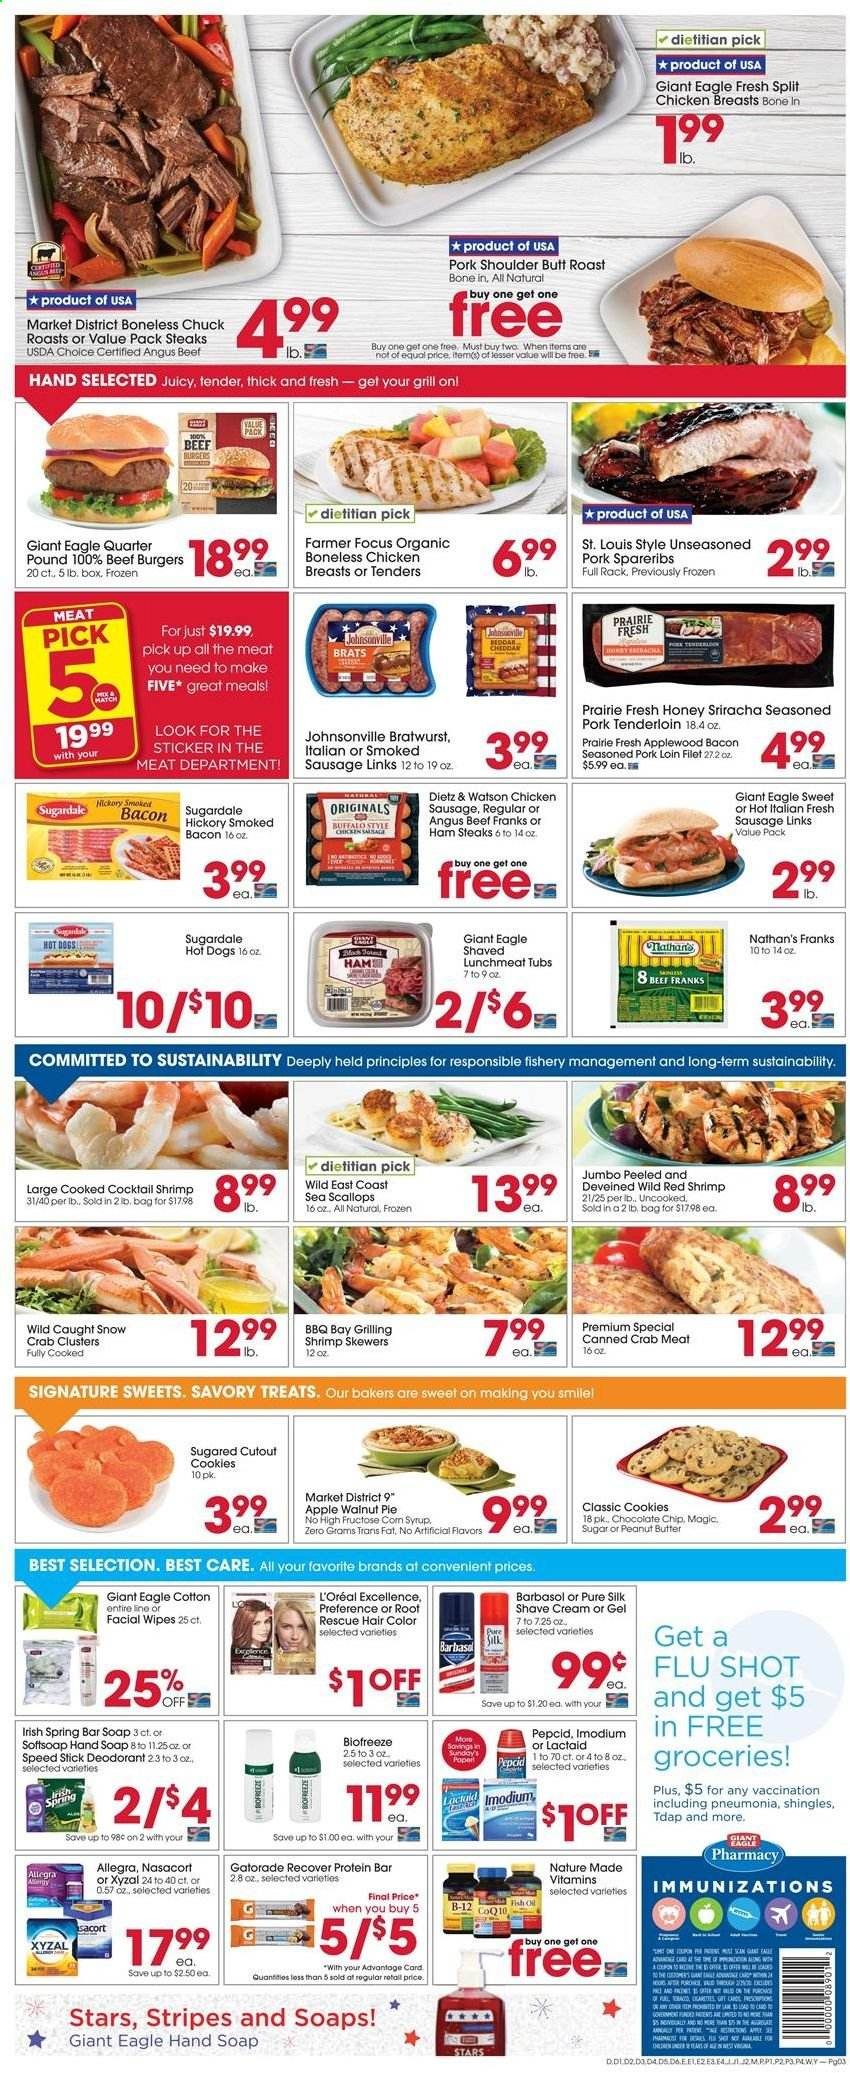 Giant Eagle Flyer  - 08.29.2019 - 09.04.2019. Page 3.